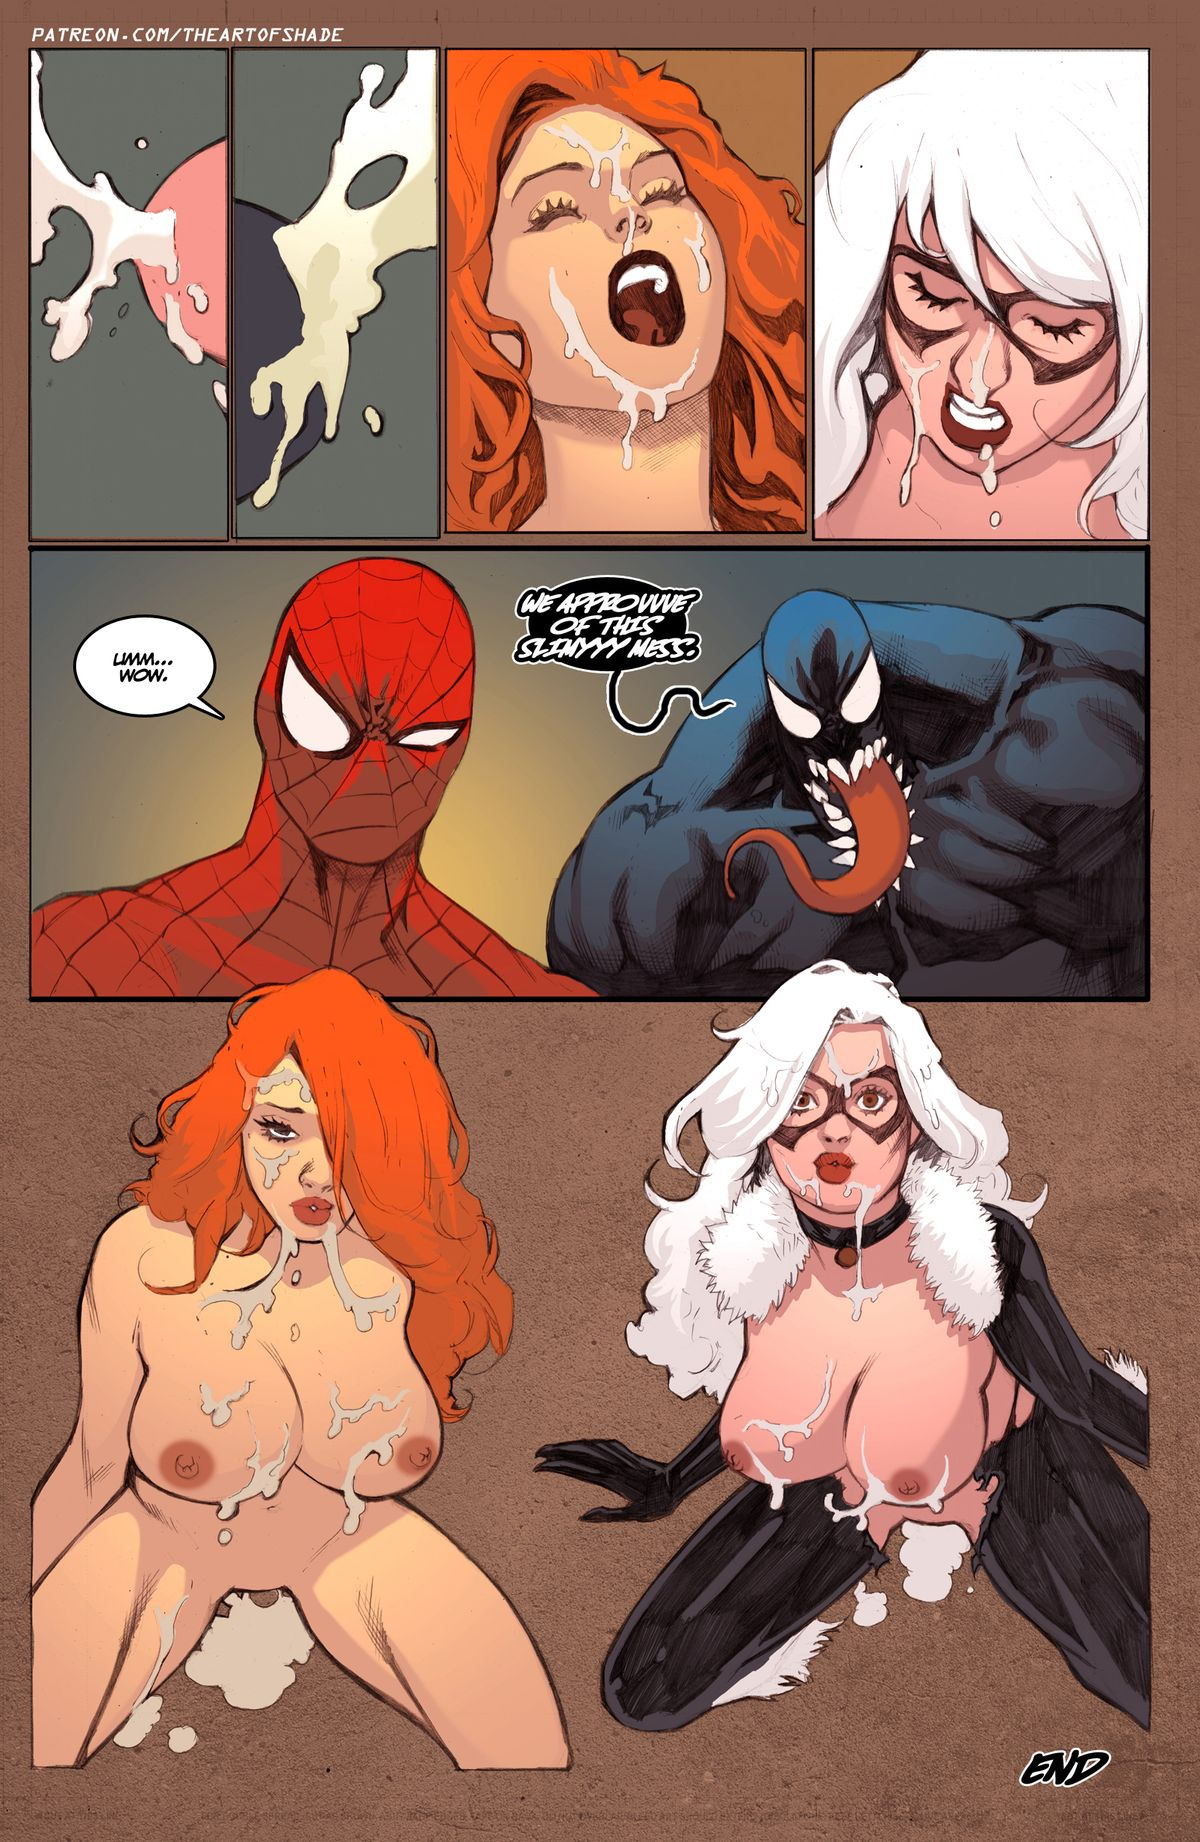 Spiderman Porn